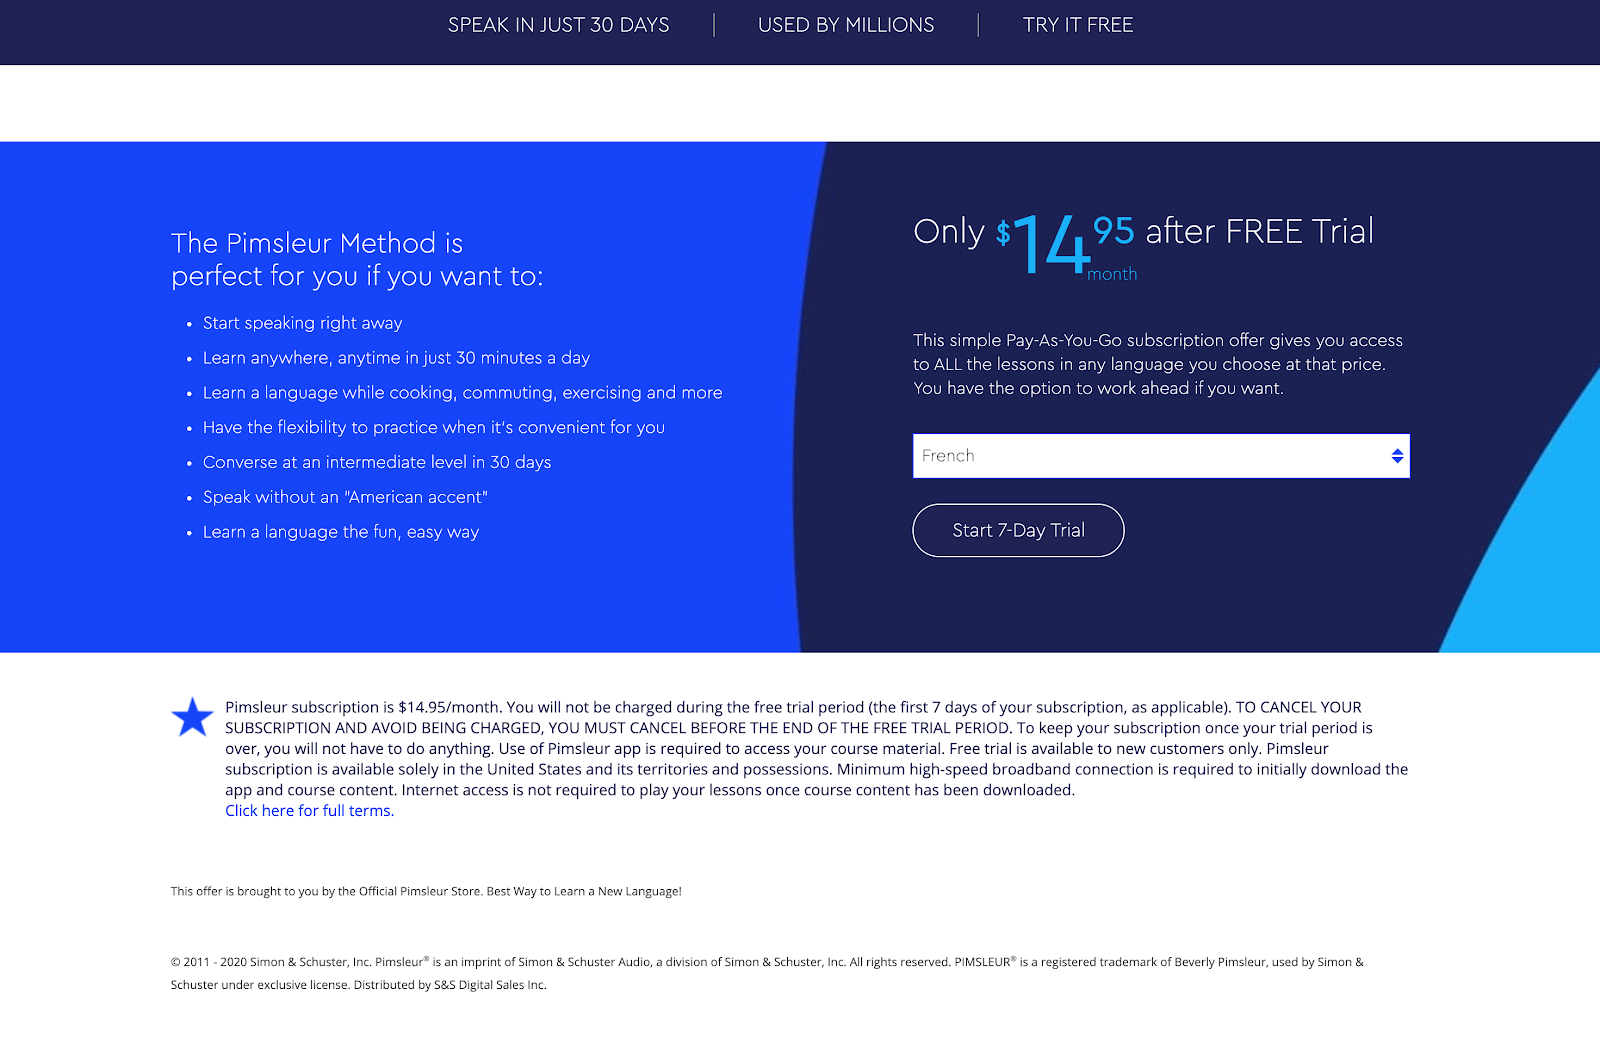 Select your plan to begin the Pimsleur Free Trial.